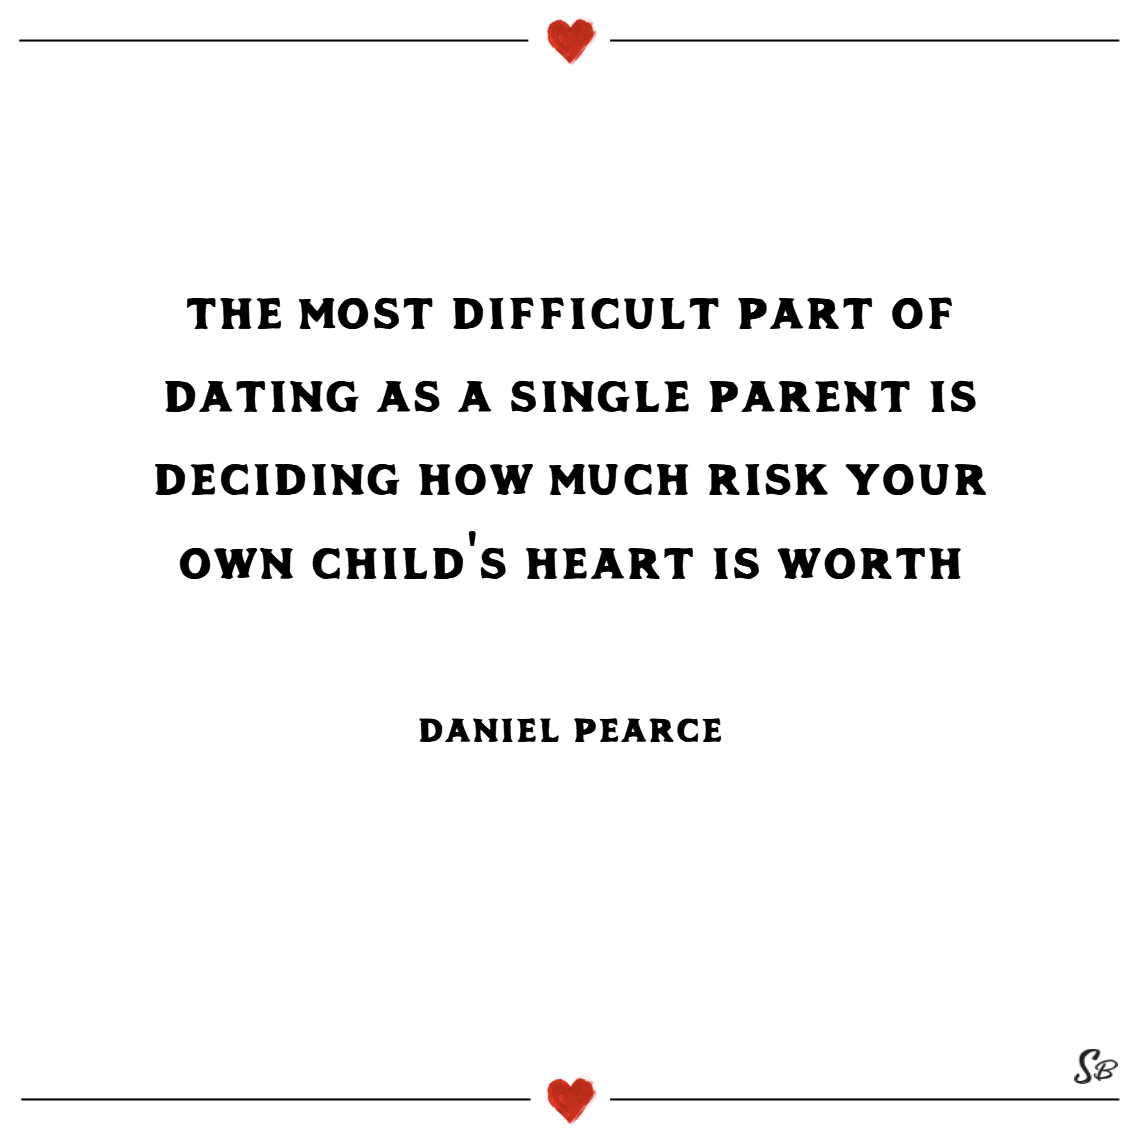 The most difficult part of dating as a single parent is deciding how much risk your own child's heart is worth. – daniel pearce